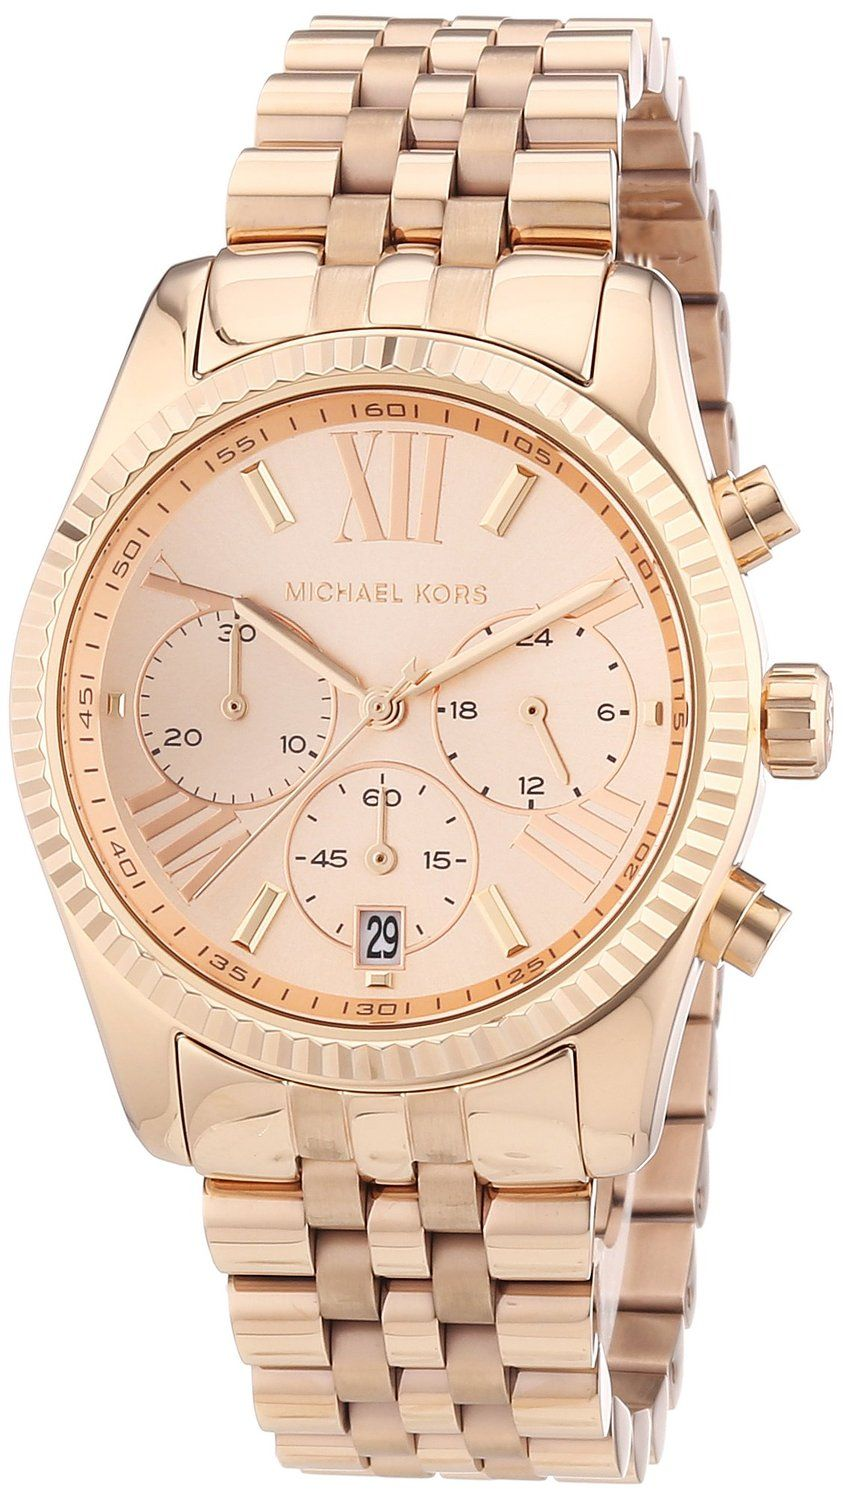 Gold watches for women Michael Kors Pulseiras, Bijuterias, Relógio Feminino,  Michael Kors Rose 719c13e3f7